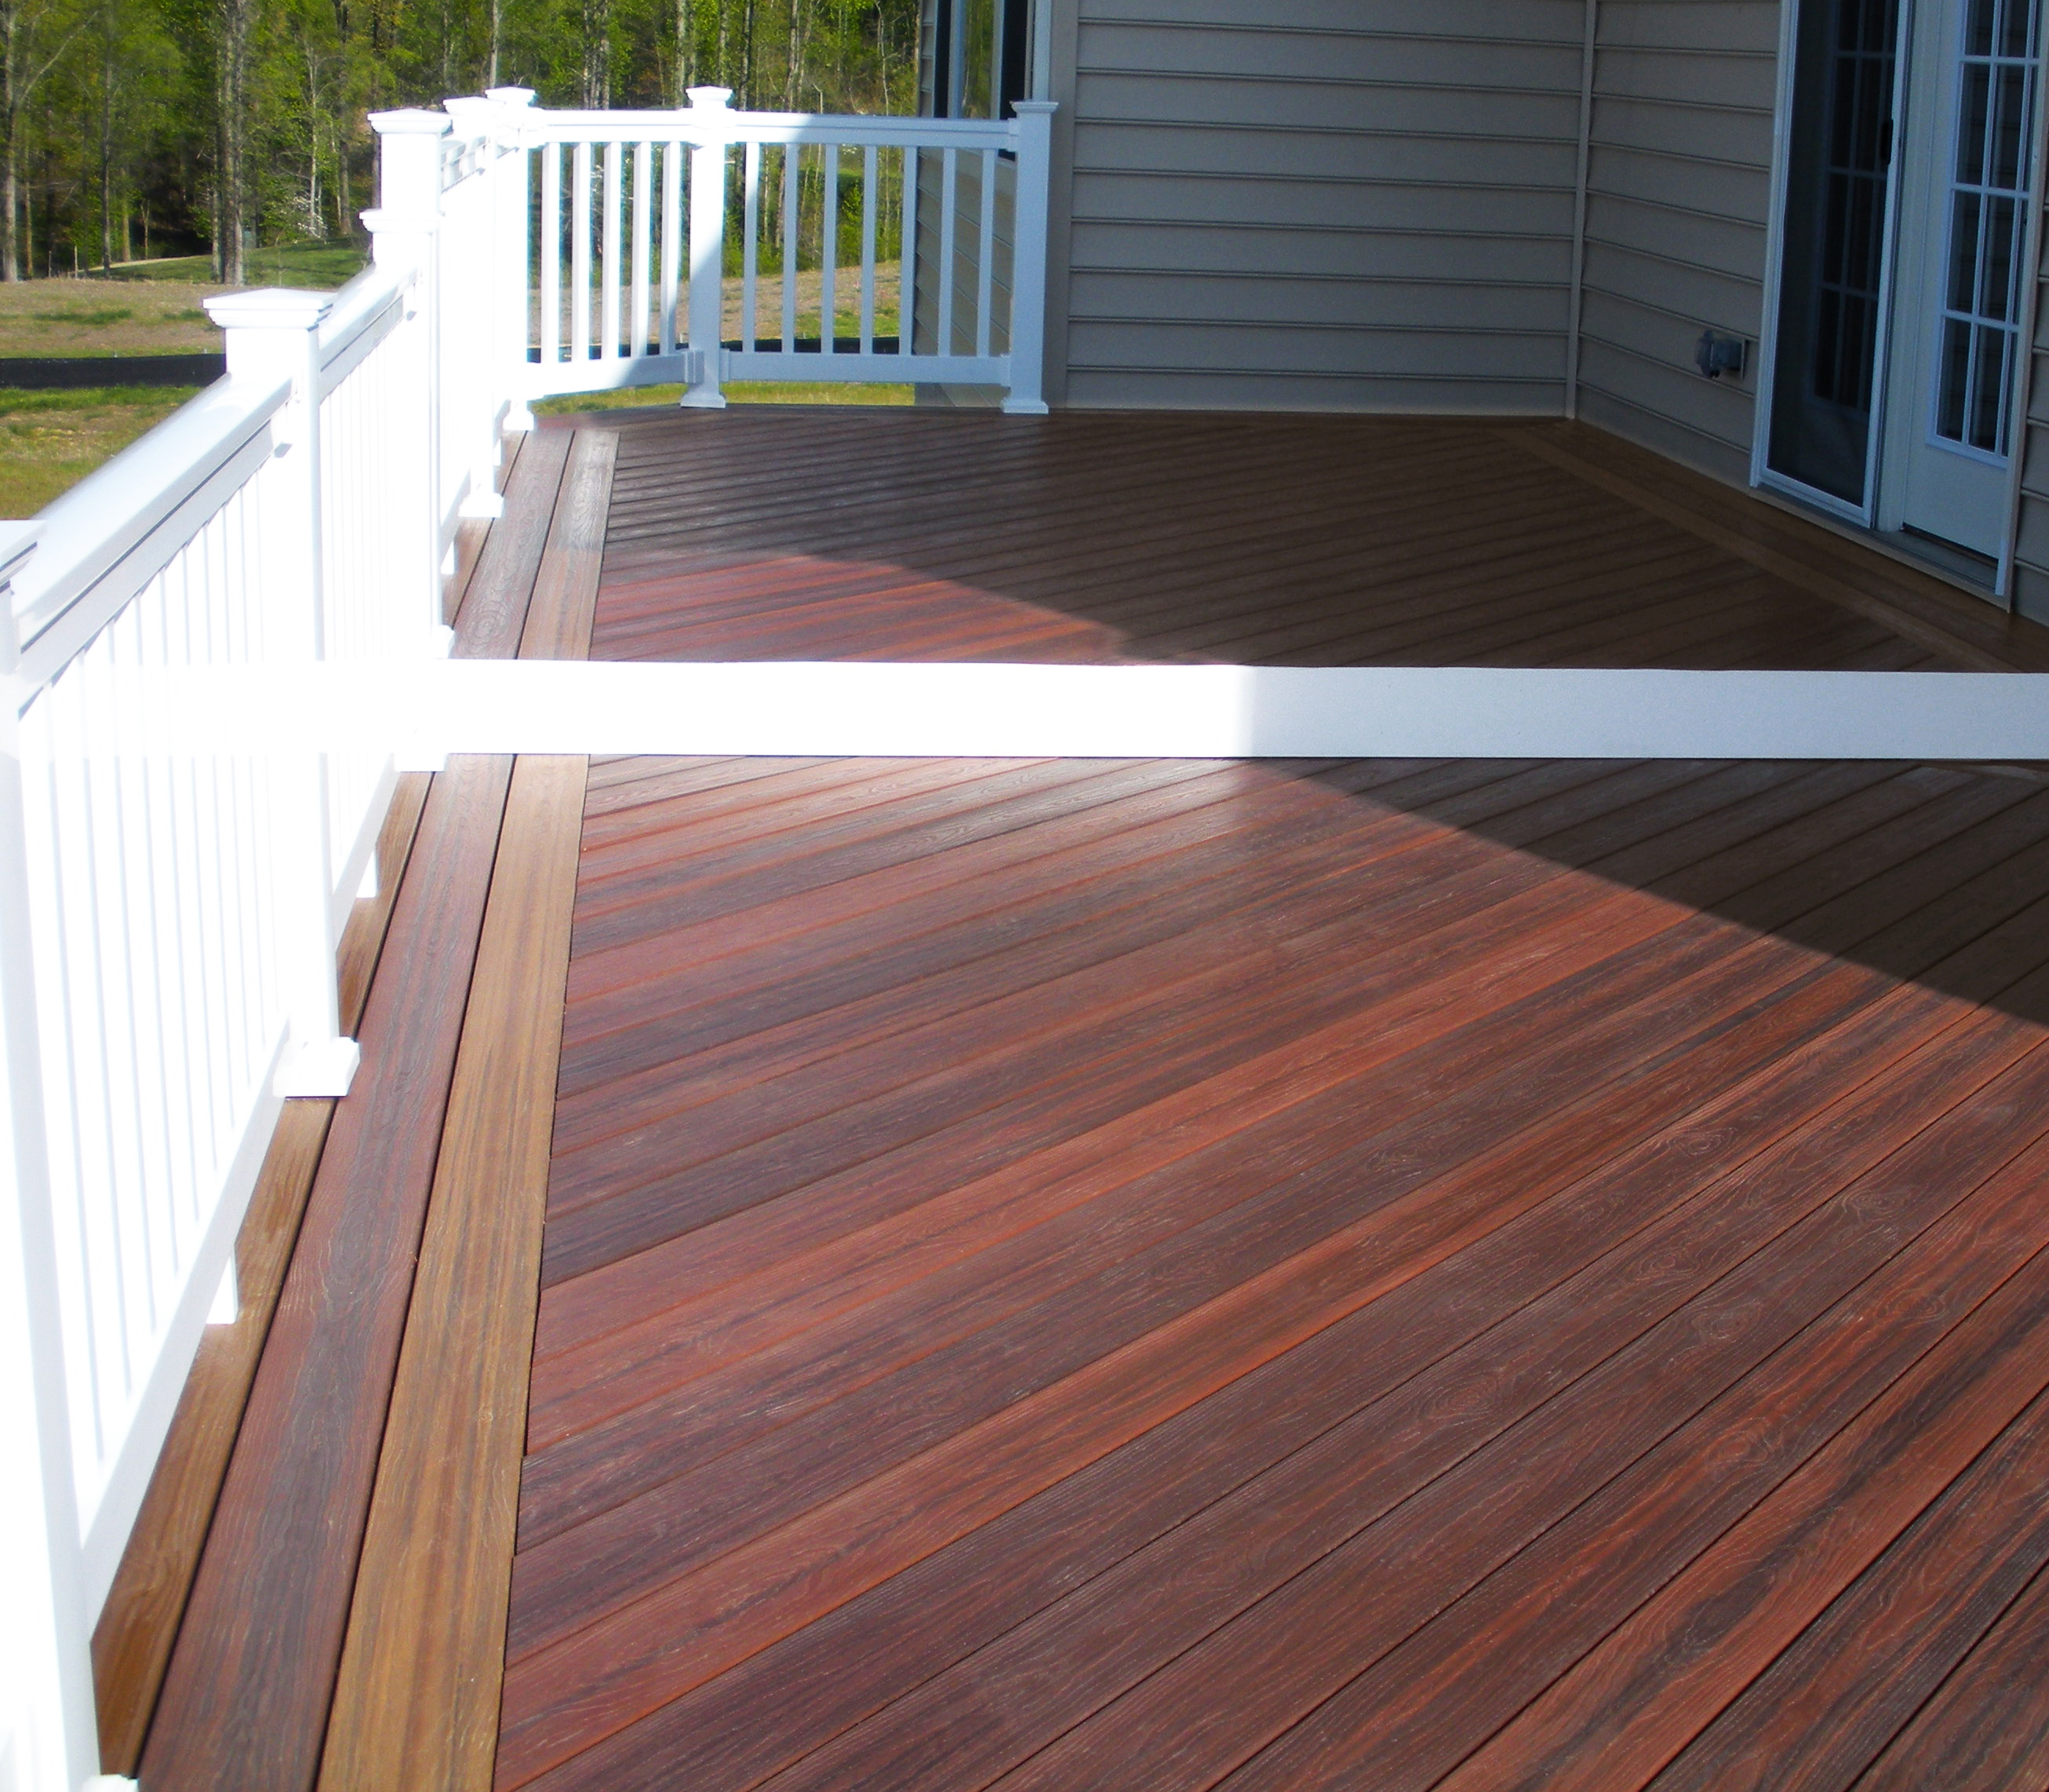 Best composite decking best composite decking resistant for Best material for deck